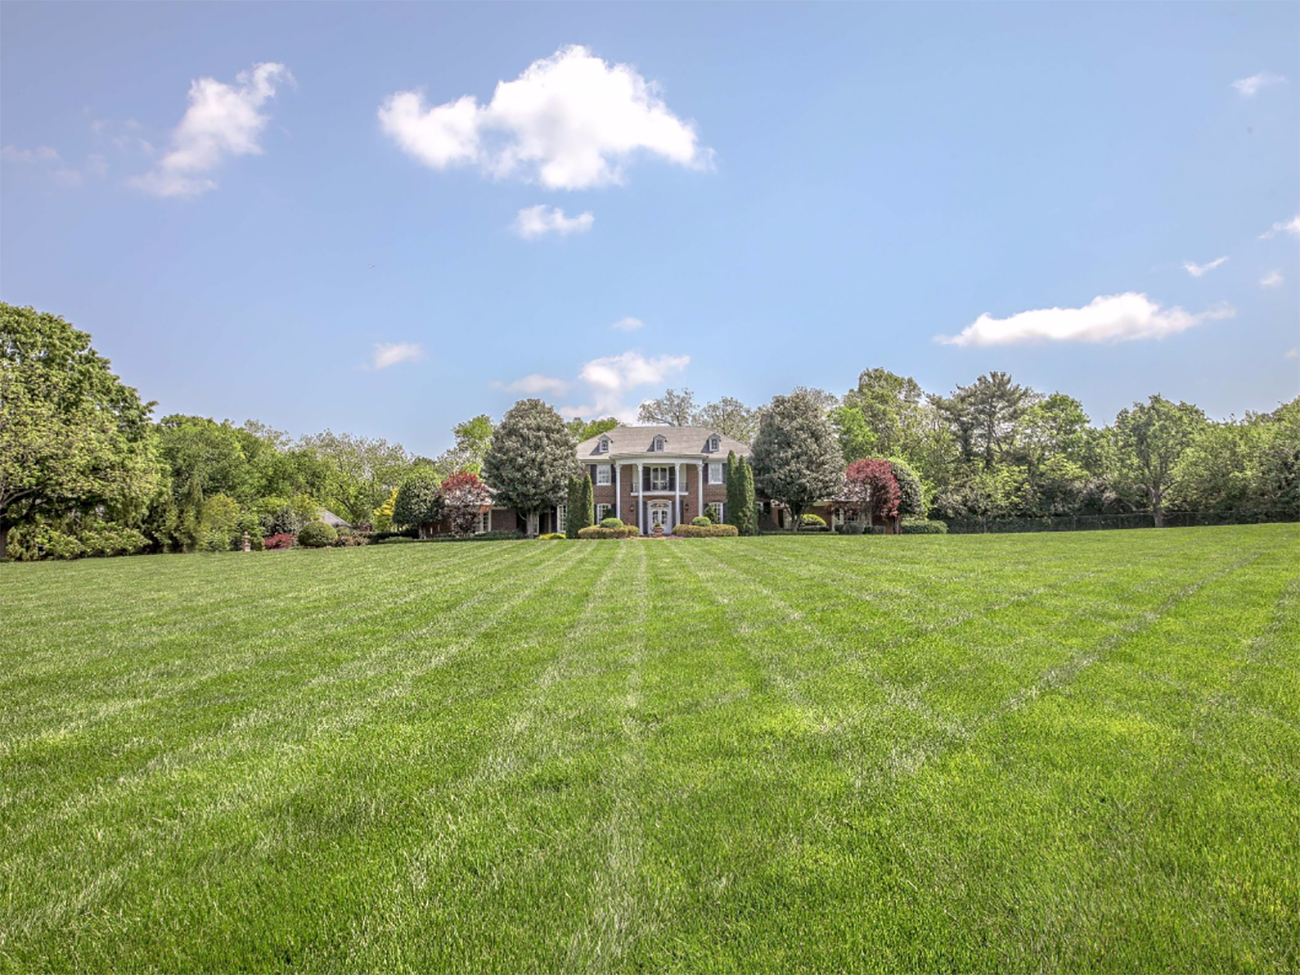 The Siskey family's SouthPark mansion is on the market